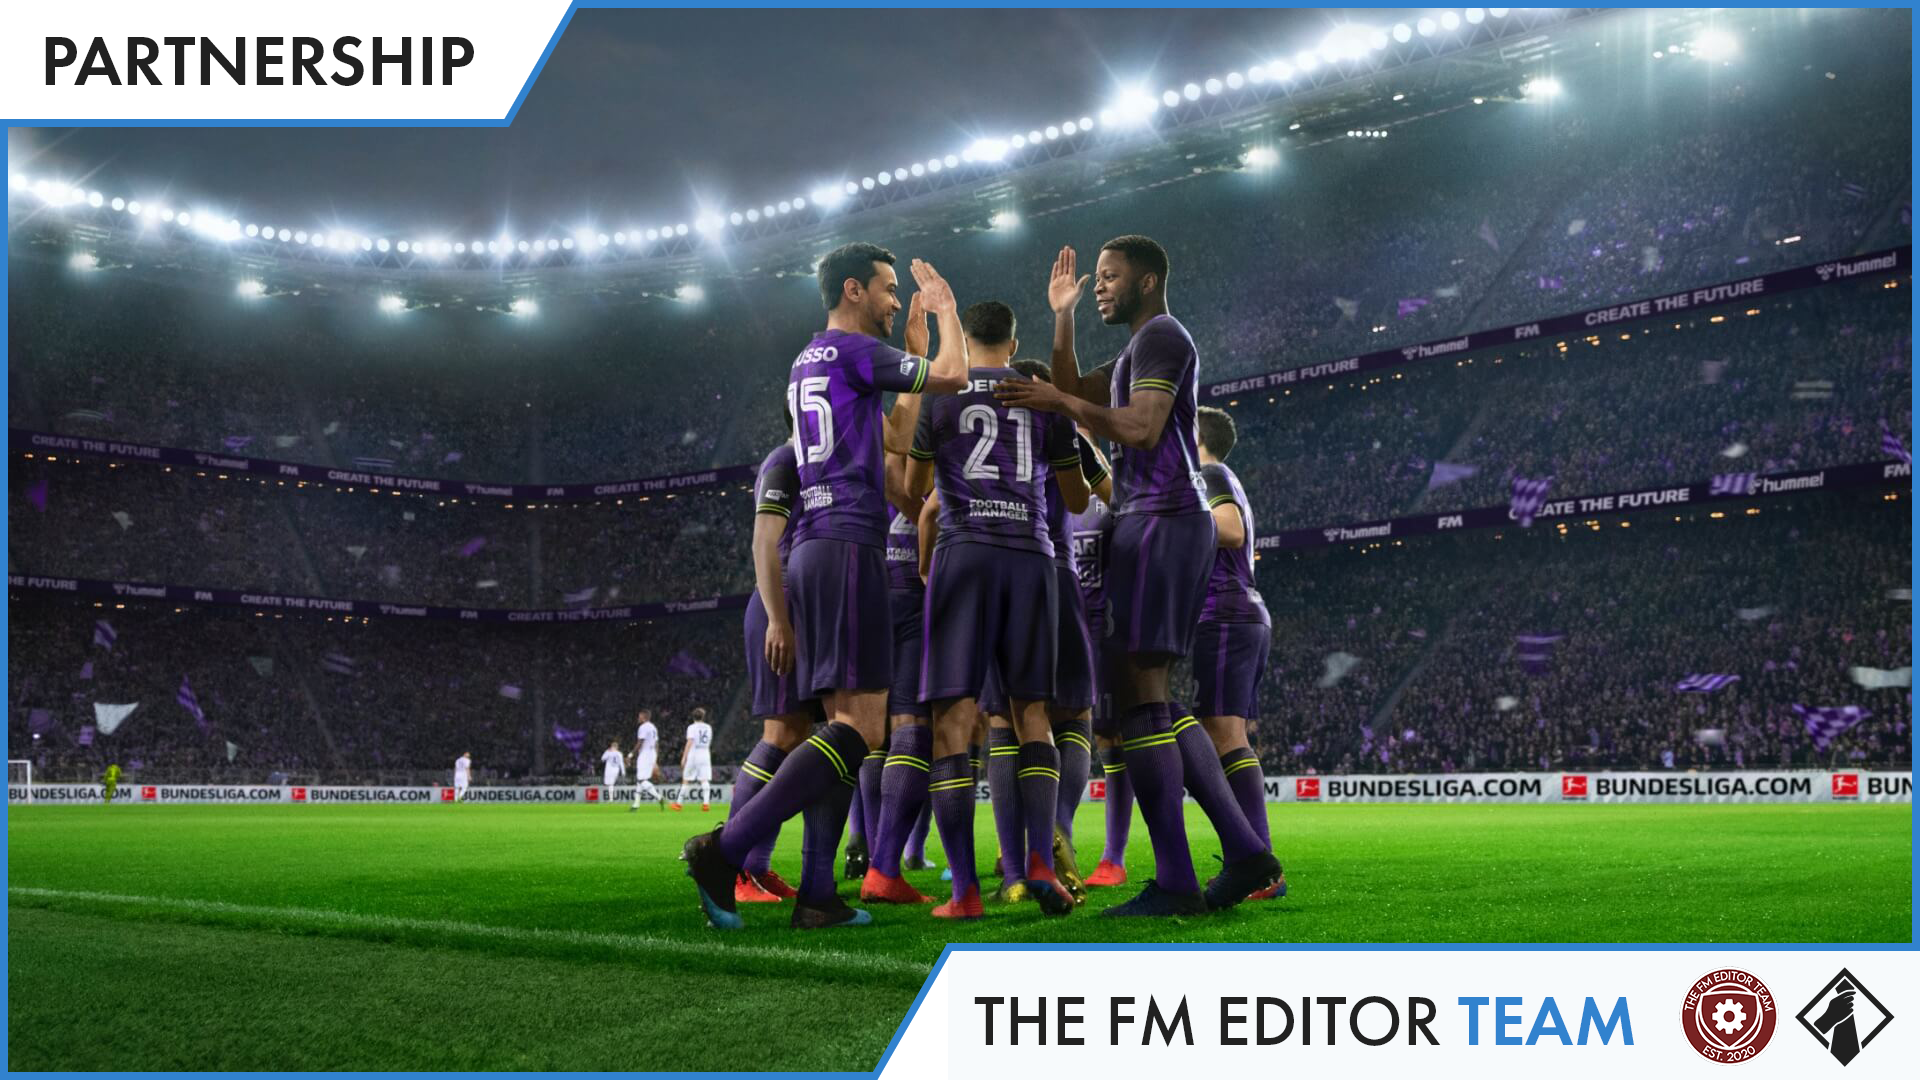 """Exclusive: FM Base and The FM Editor Team are teaming up"" feature image"